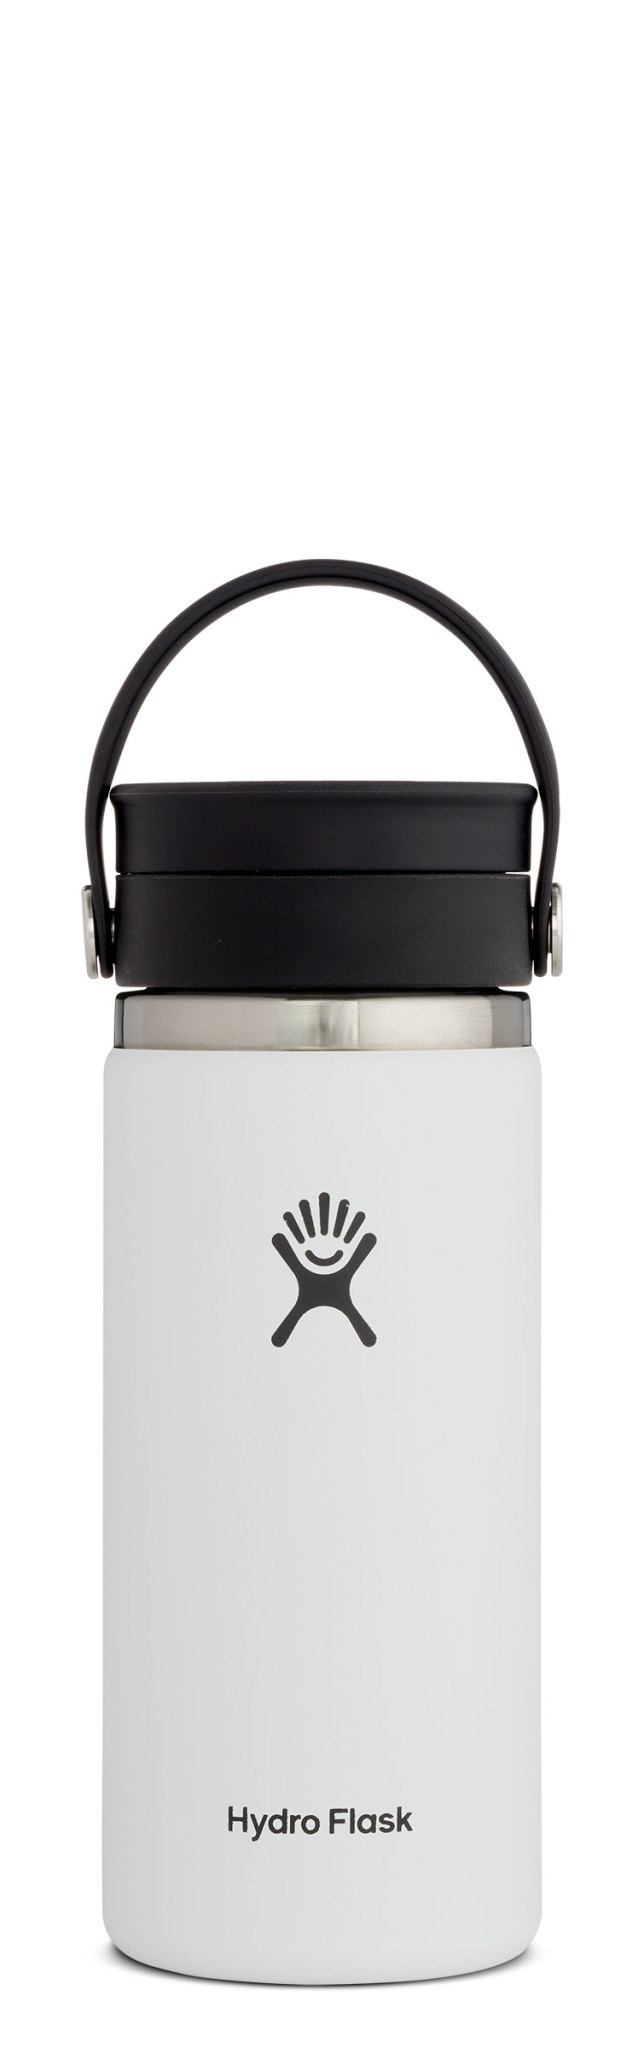 Hydro Flask 16oz Wide Mouth with Flex Sip Lid-1